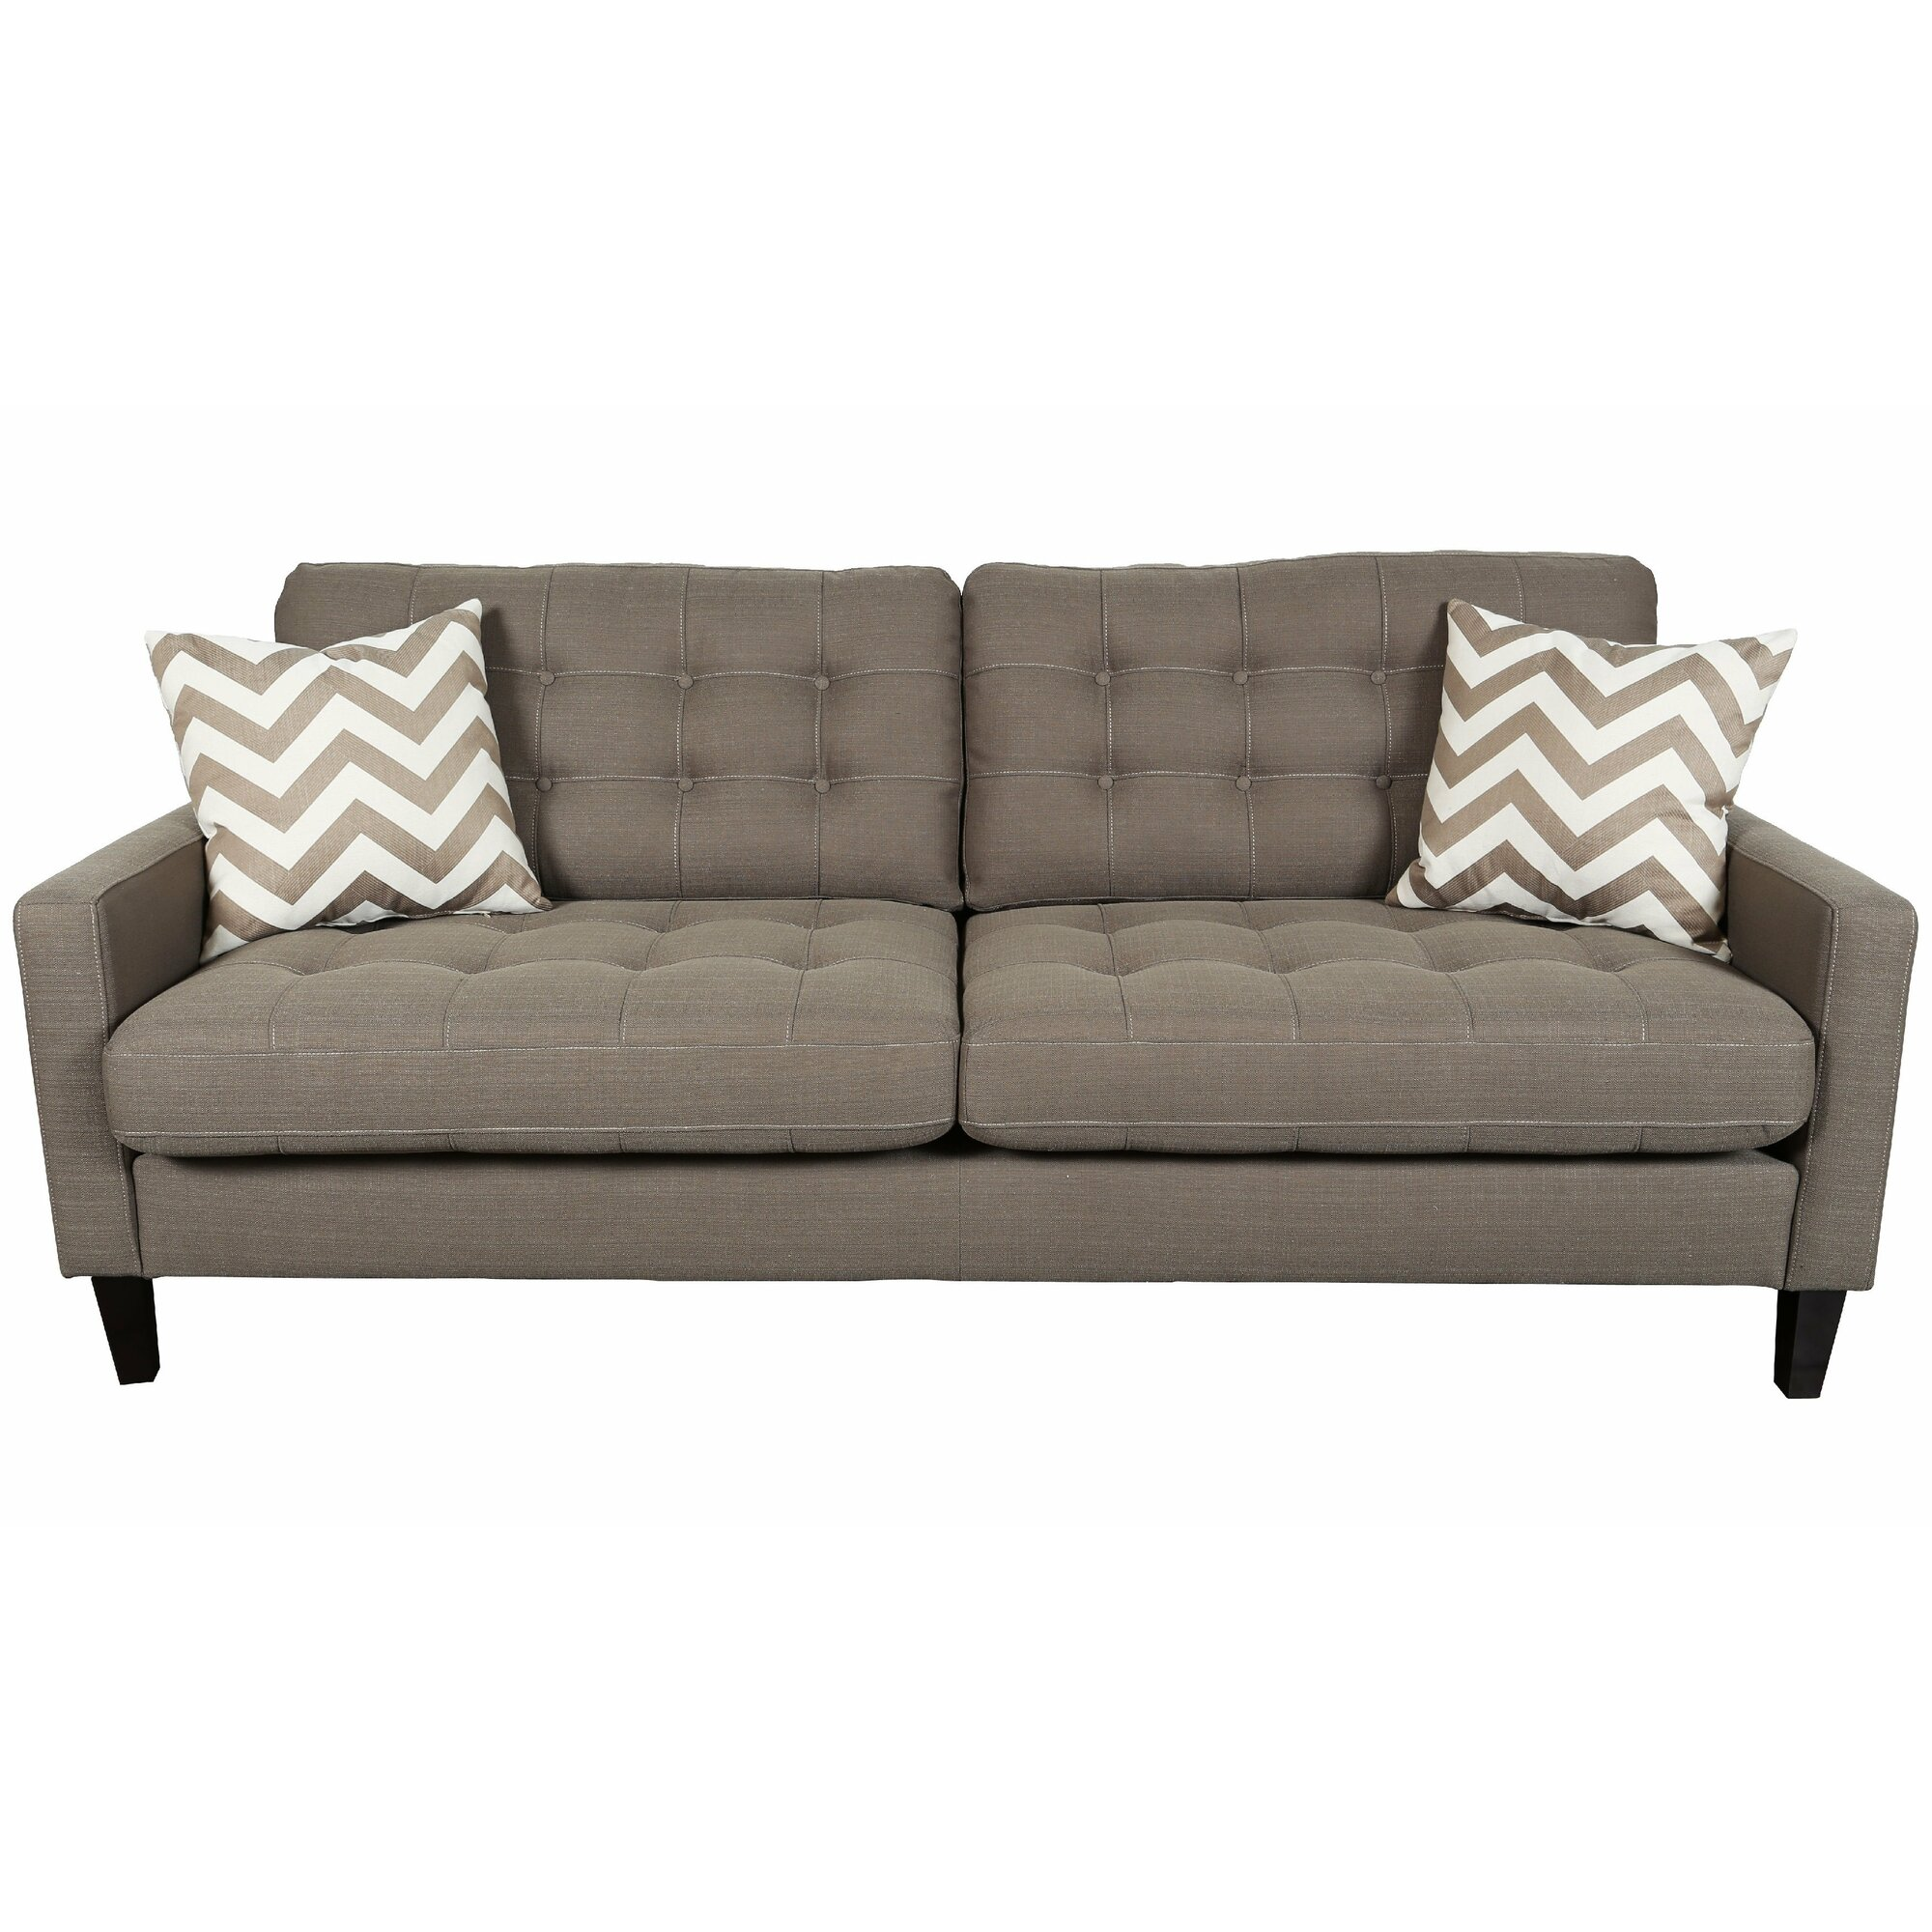 Porter International Designs Hamilton Sofa Reviews Wayfair